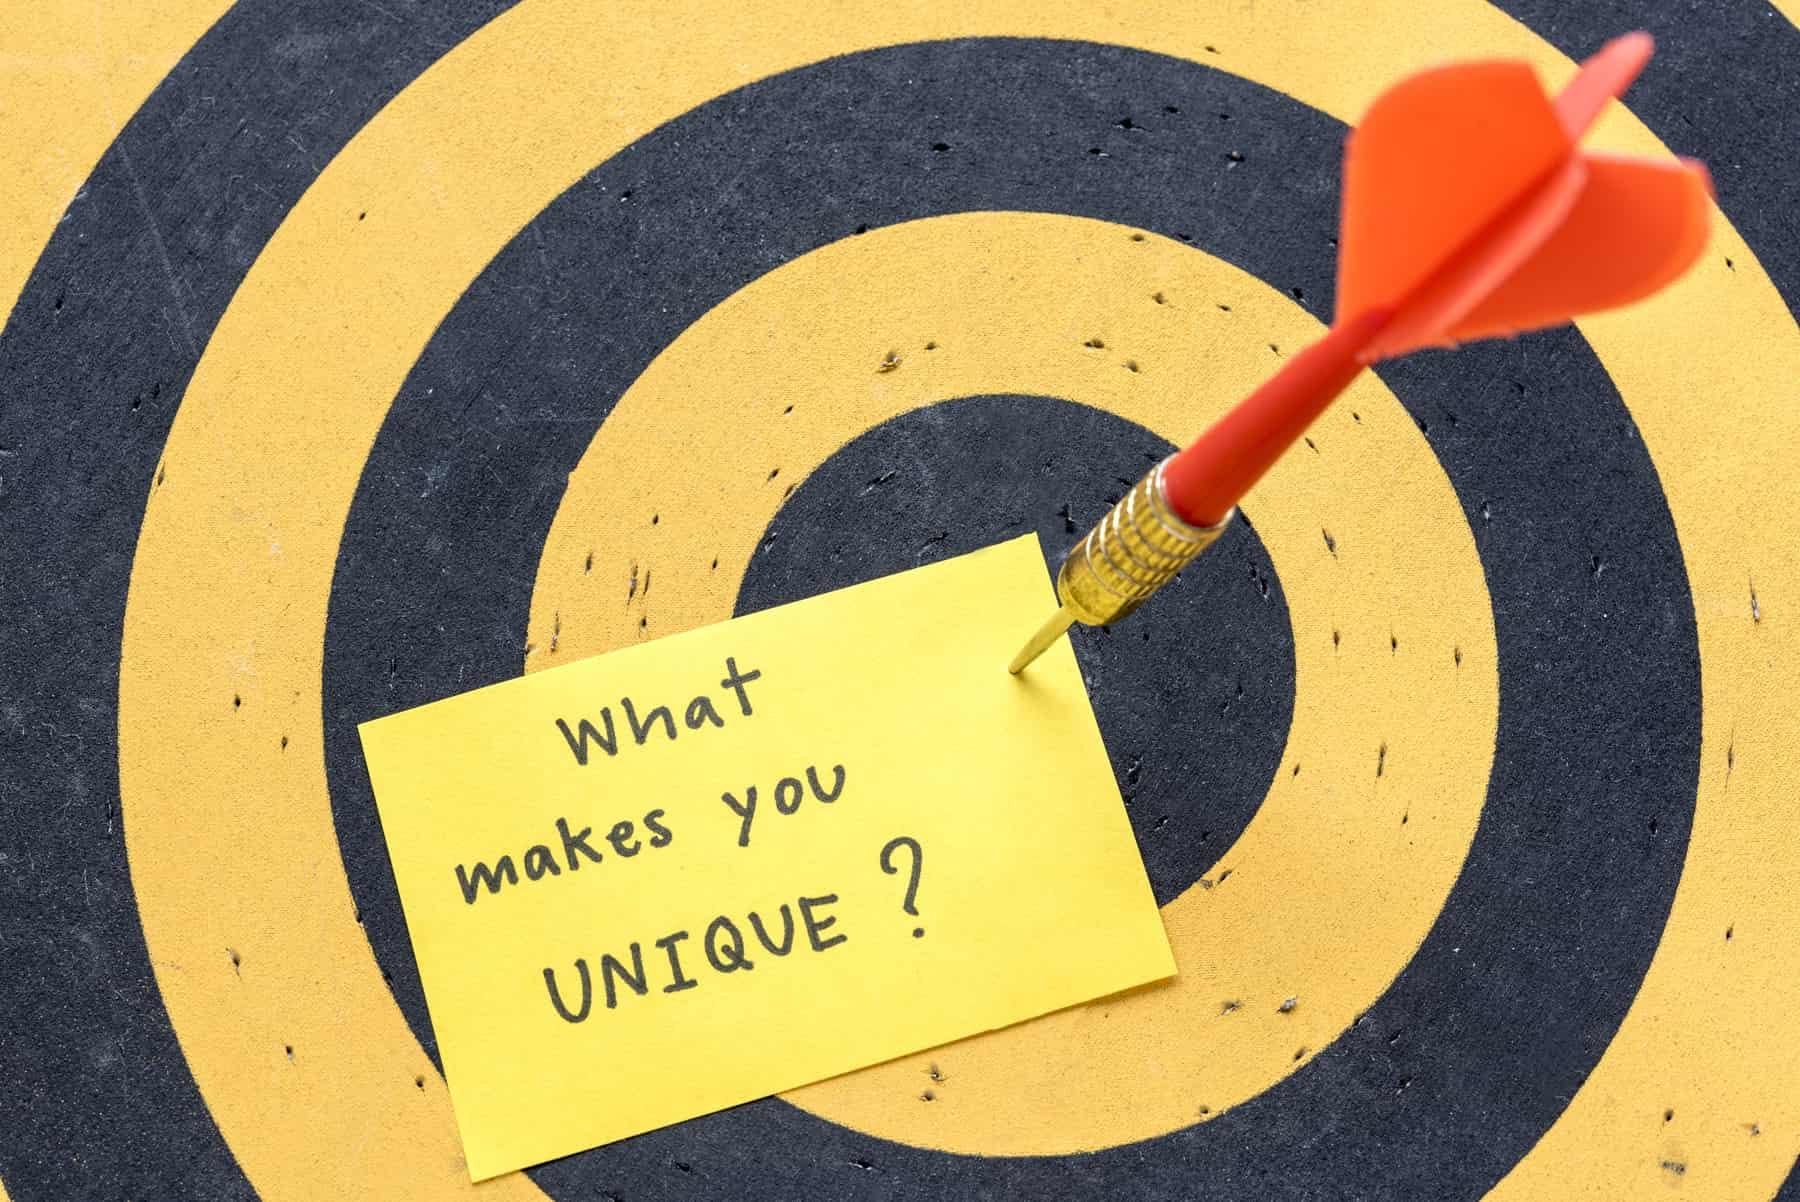 A close-up of a dartboard with a red dart stabbed in its centre holds a message on a piece of paper asking what makes you unique.